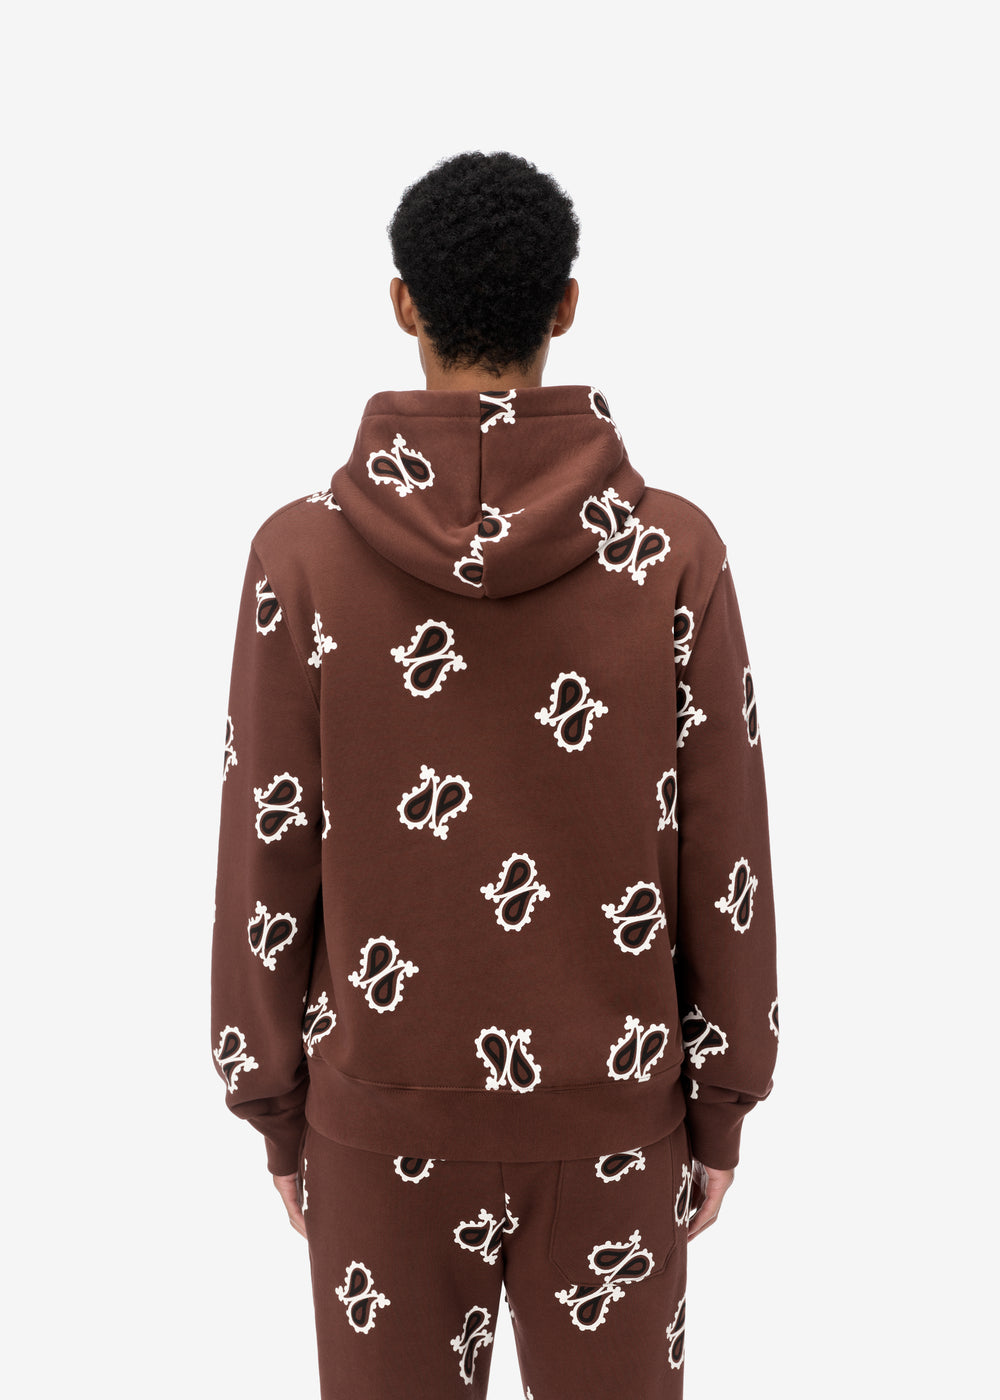 PAISLEY ALL OVER FITTED HOODIE - DARK BROWN